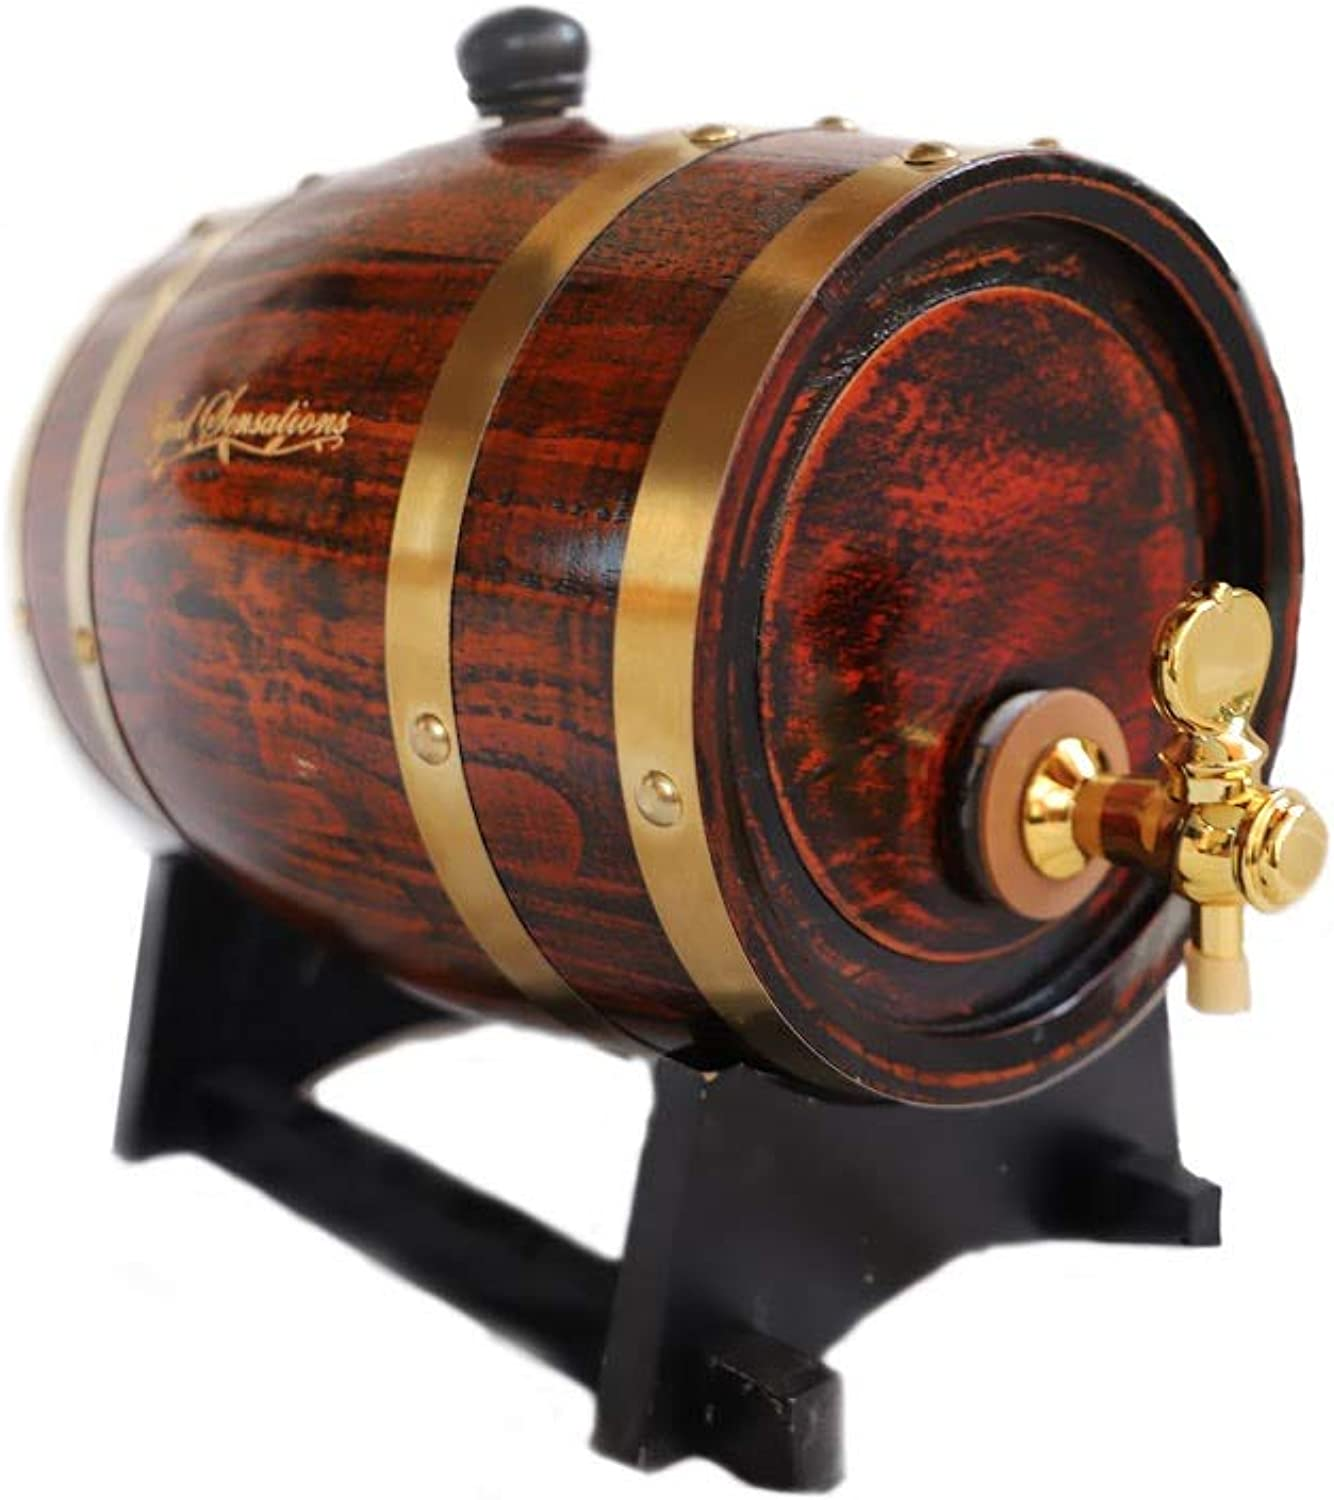 "PREMIUM OAK ""Aged Sensations"" (3 Liter) Home Whiskey Barrel Dispenser for Wine, Spirits, Beer, and Liquor  Holds ENTIRE Bottle Handle"